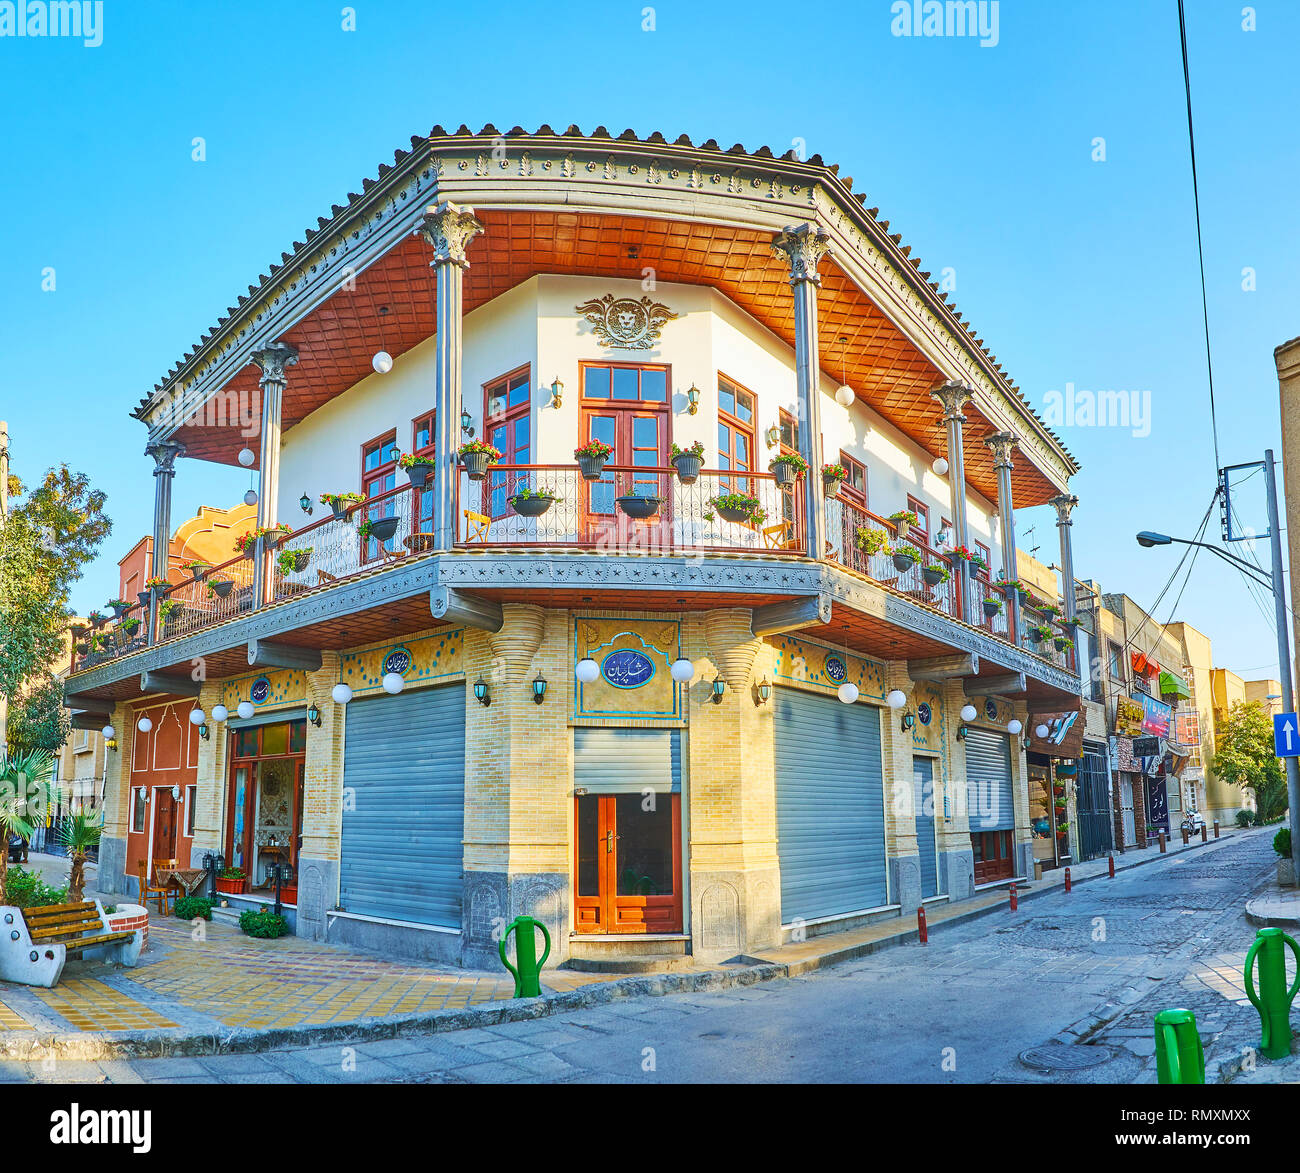 ISFAHAN, IRAN - OCTOBER 21, 2017: The The scenic Armenian manison with corner facade, open terrace, tile decorations, stores on the ground floor and f Stock Photo